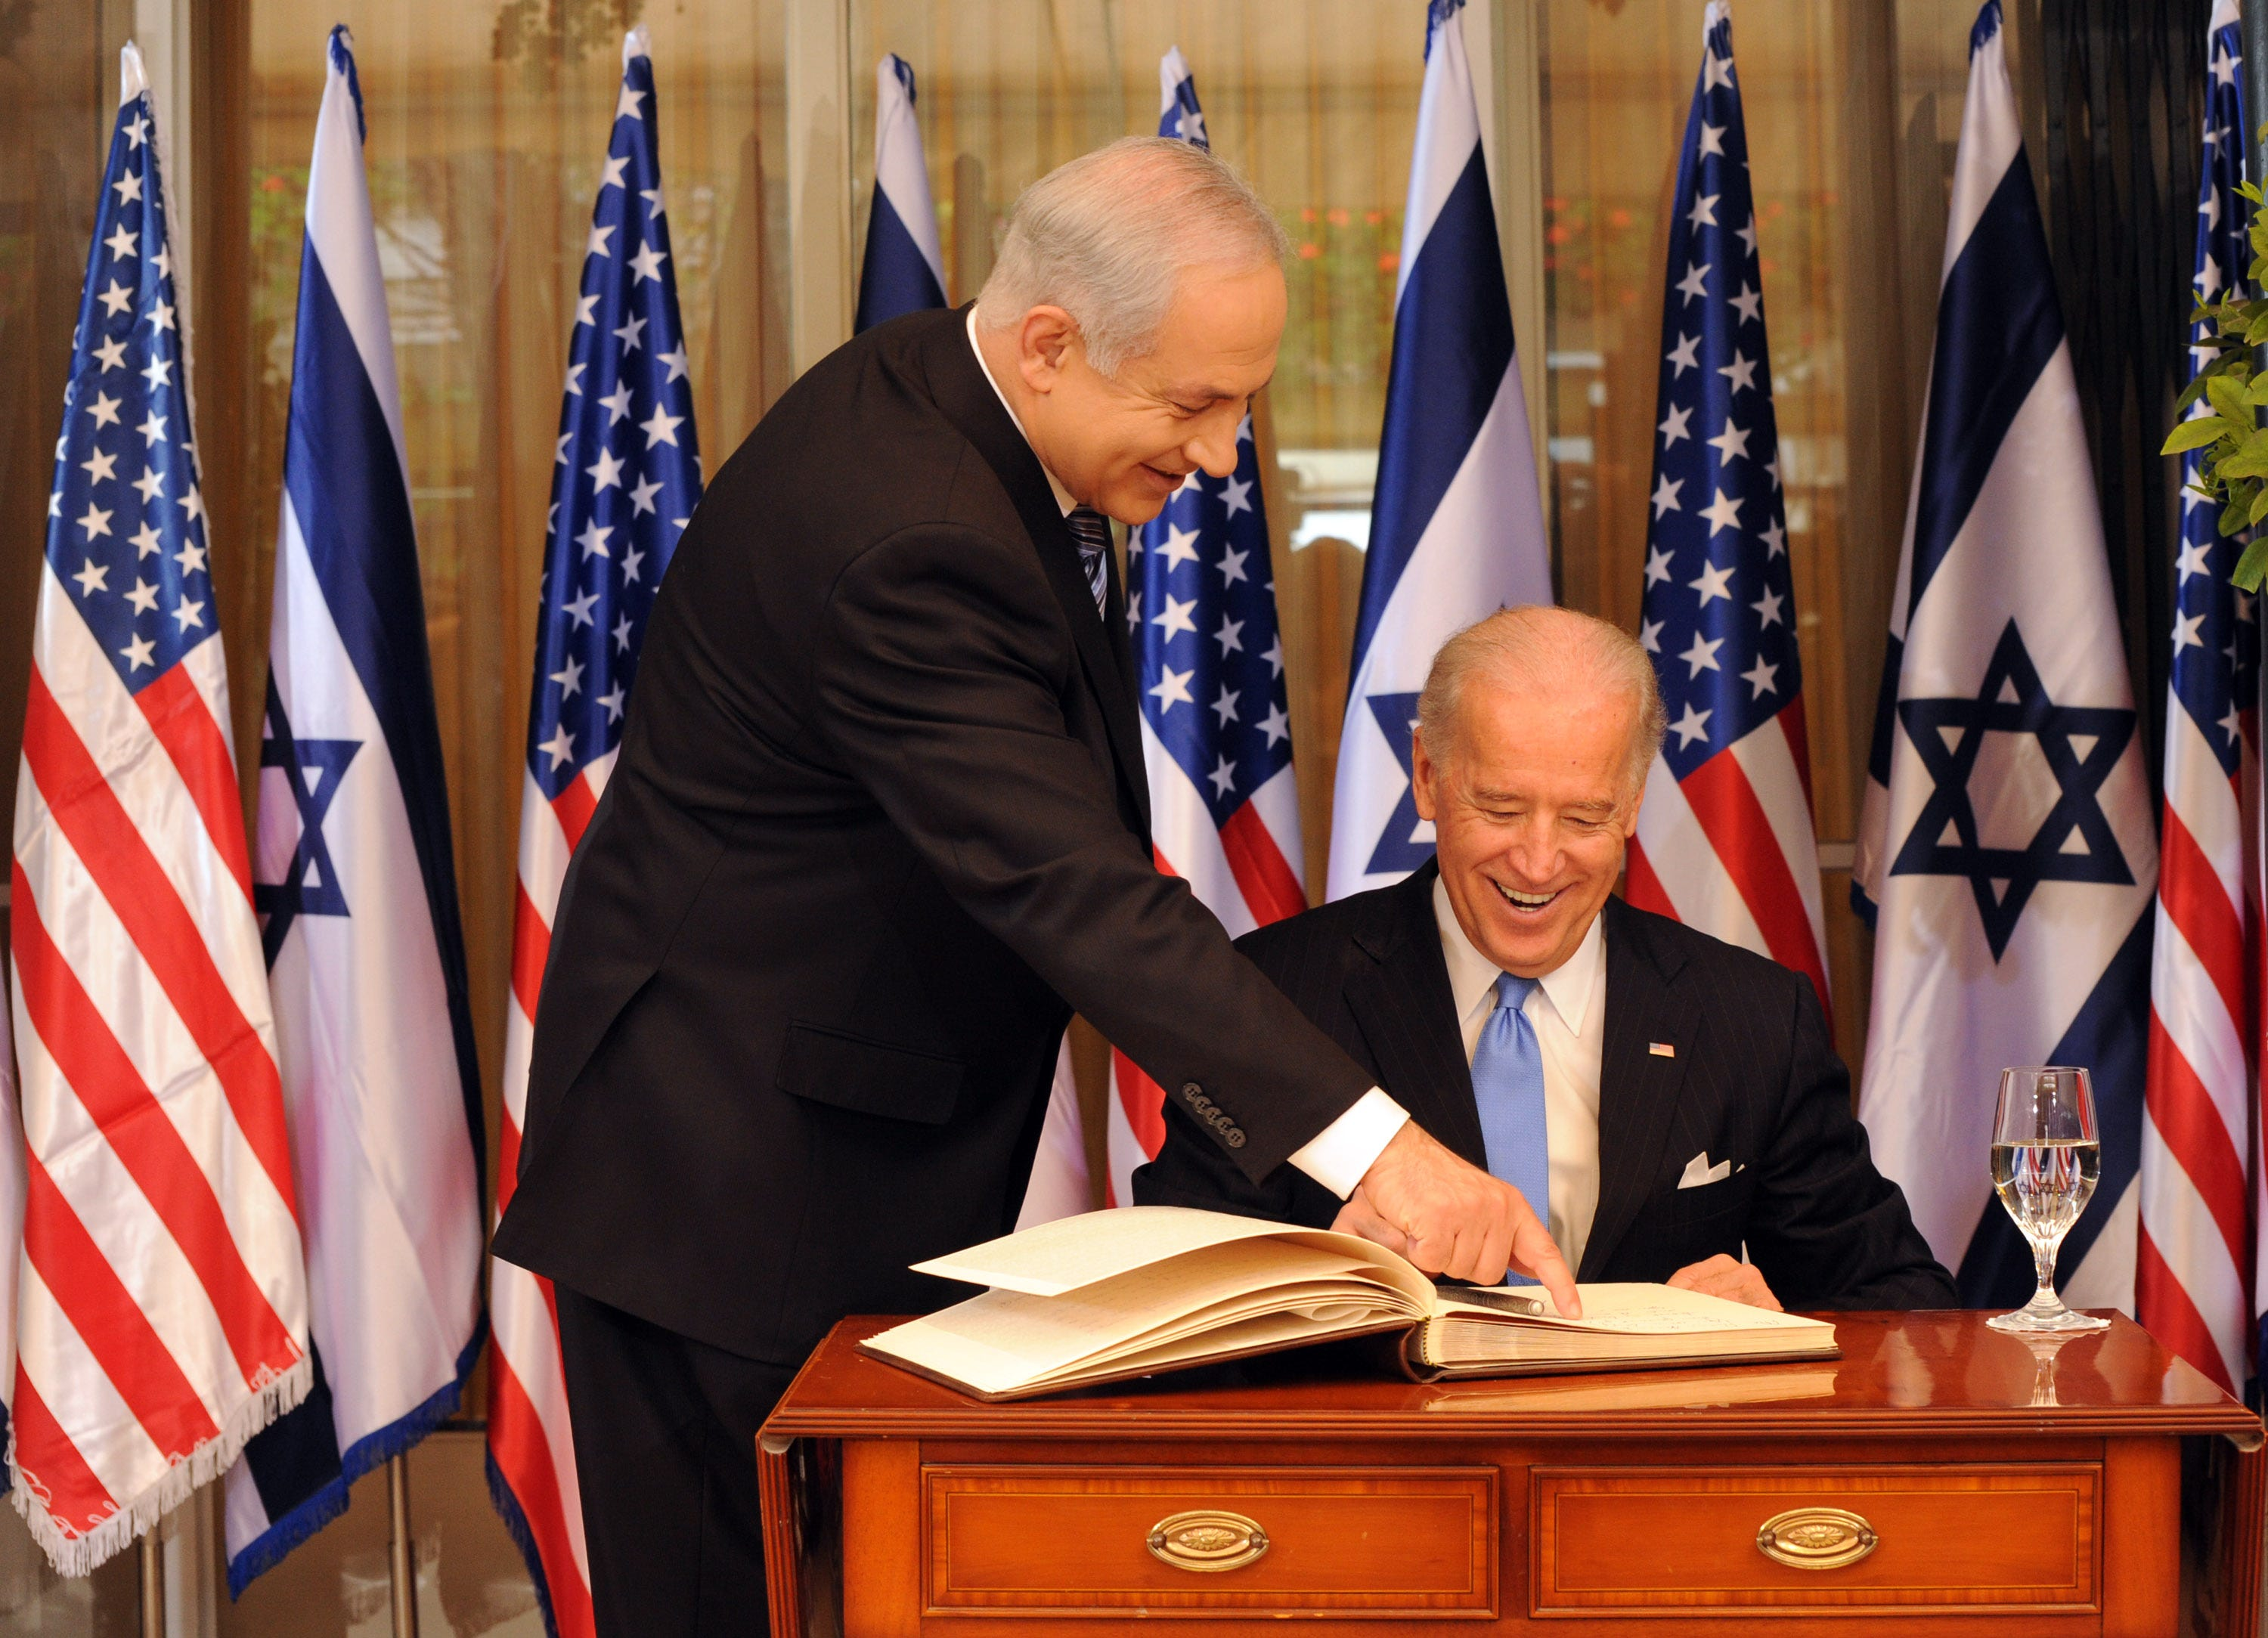 Biden signals sharp pivot from Trump s unconventional foreign policy with pick of insider Antony Blinken